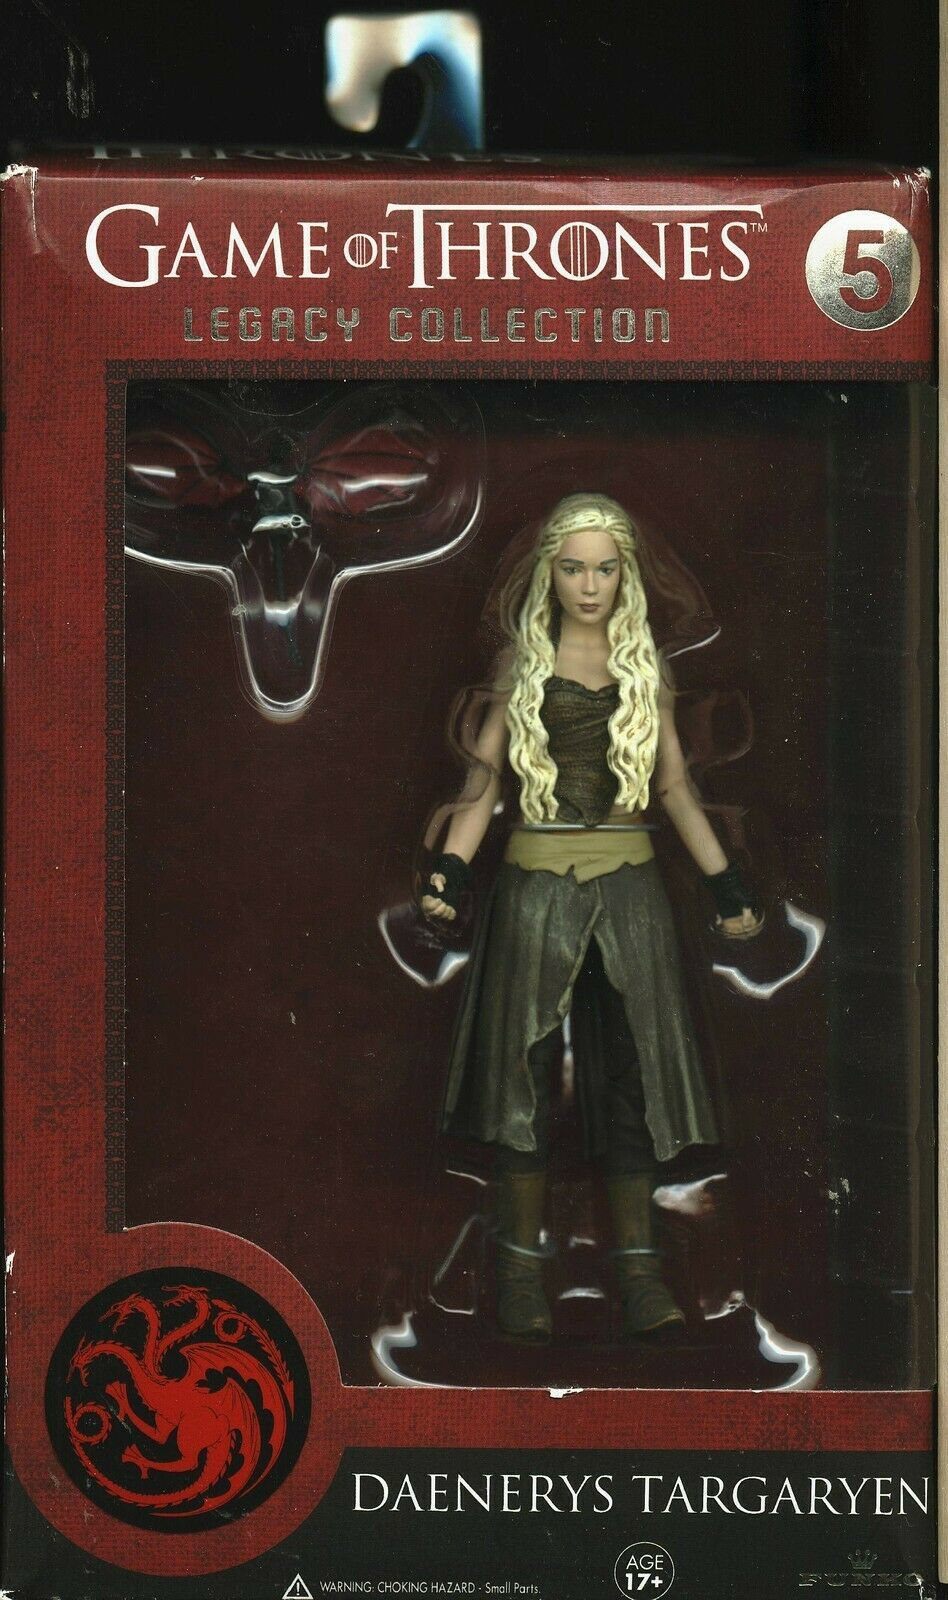 Primary image for DAENERYS TARGARYEN FIGURE FUNKO LEGACY COLLECTION 5 GAME OF THRONES NEW IN BOX